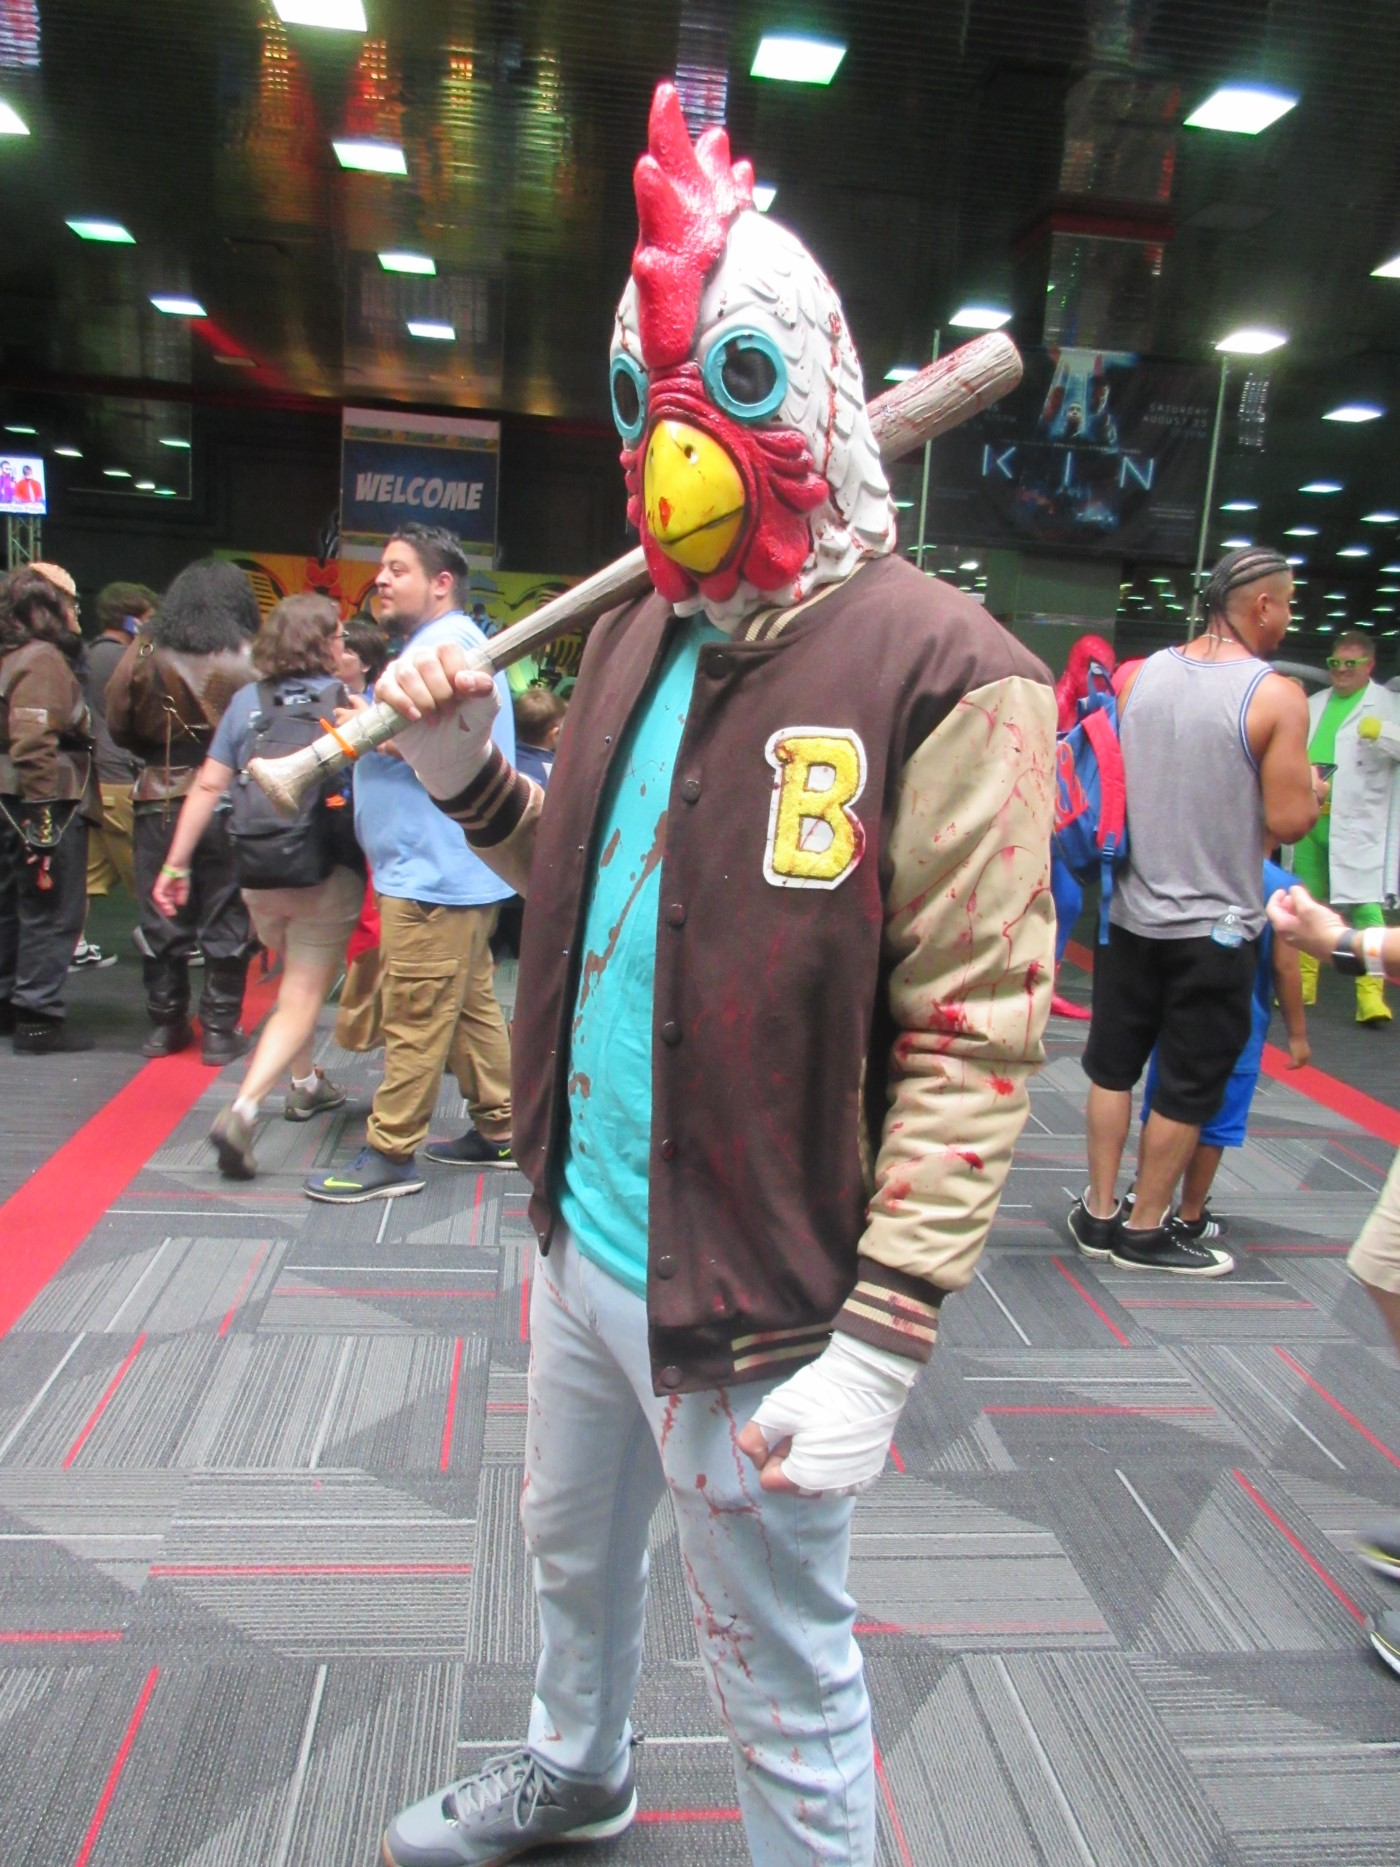 Richard from Hotline Miami!